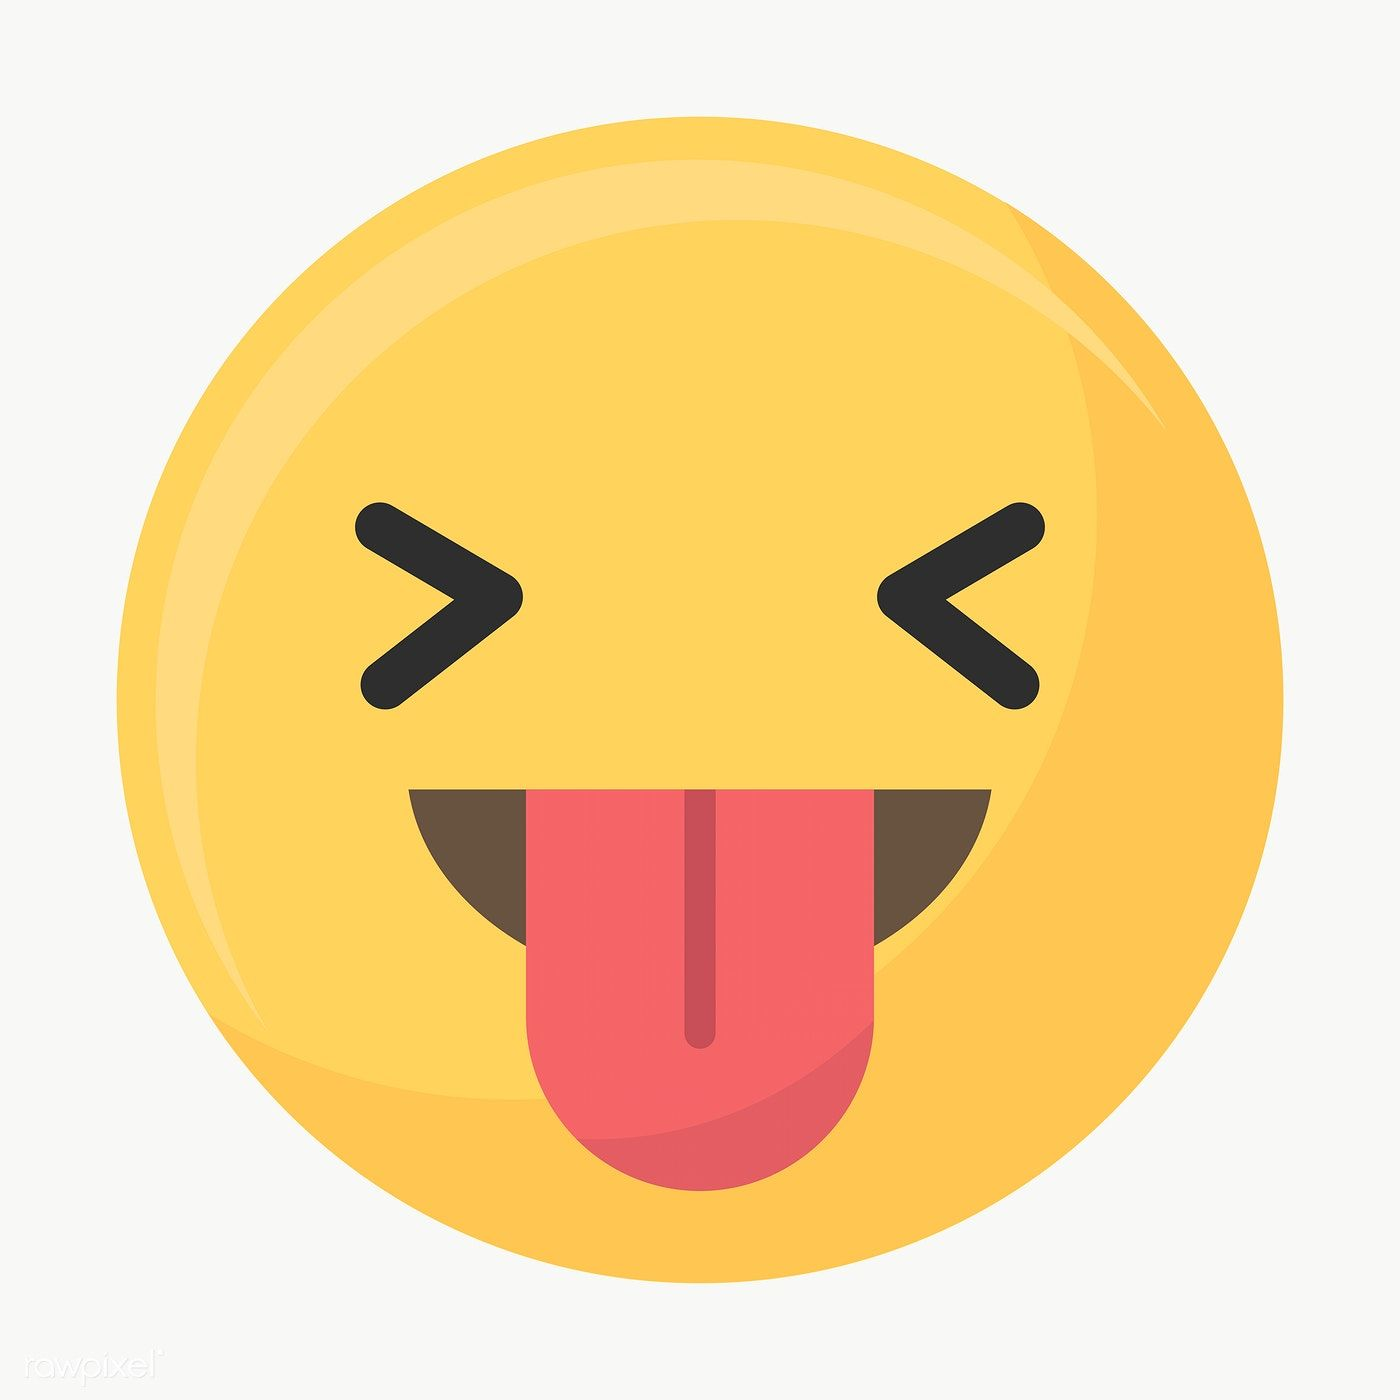 Stuck Tongue Out Face Emoticon Symbol Transparent Png Premium Image By Rawpixel Com Minty Emoticon Laughing Face Web Design Resources